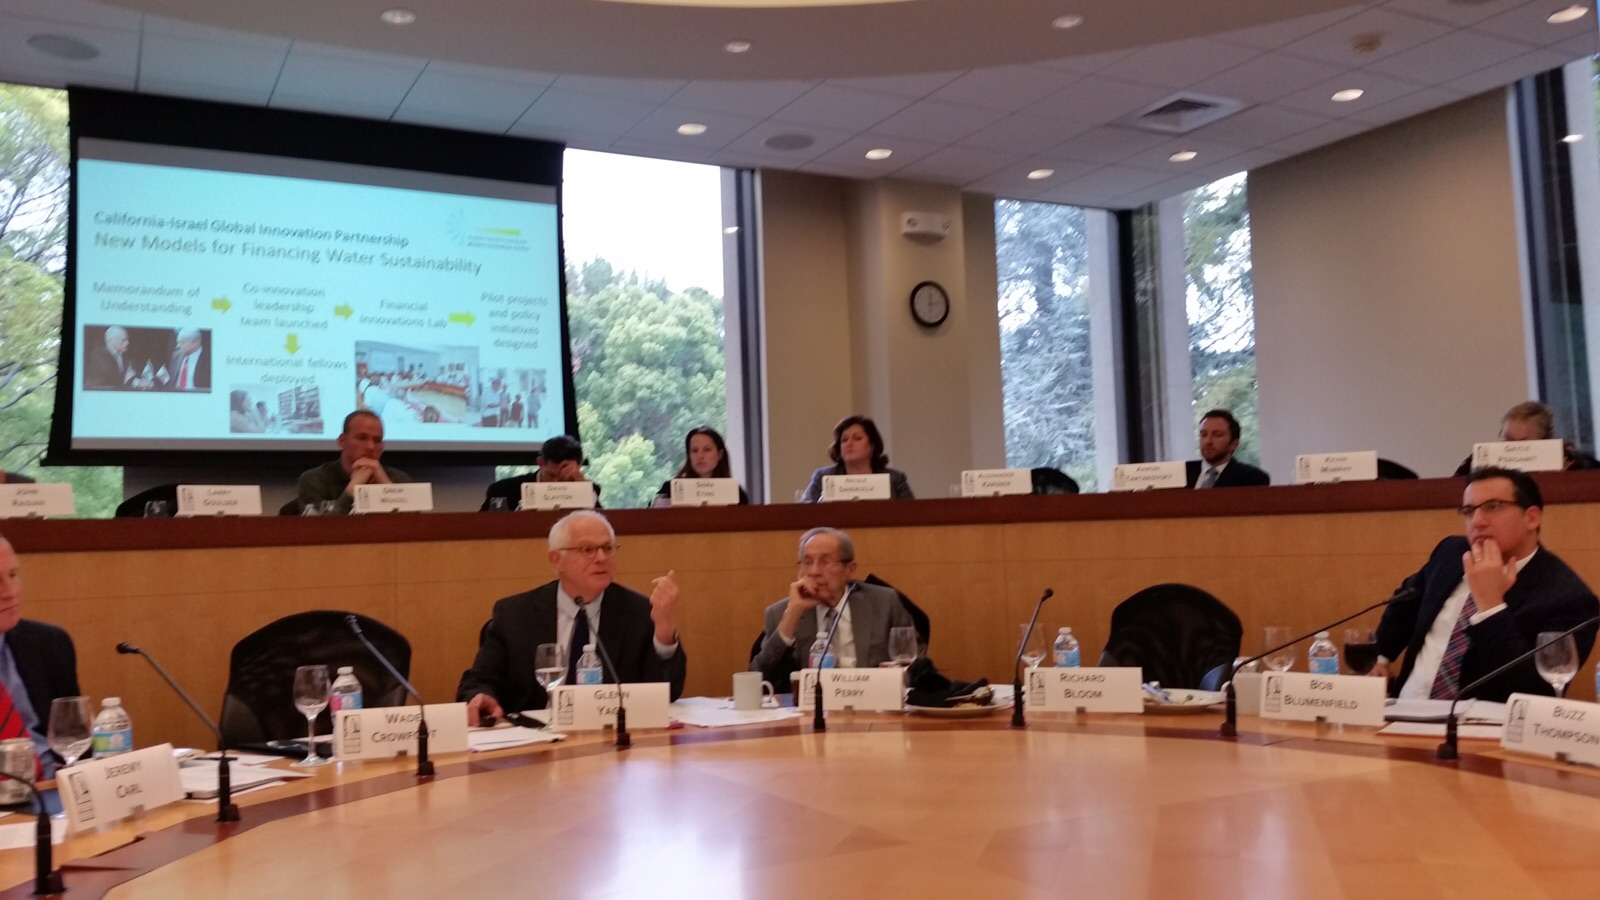 CALIFORNIA-ISRAEL WATER INNOVATION ROUNDTABLE-HOOVER INSTITUTE 2016